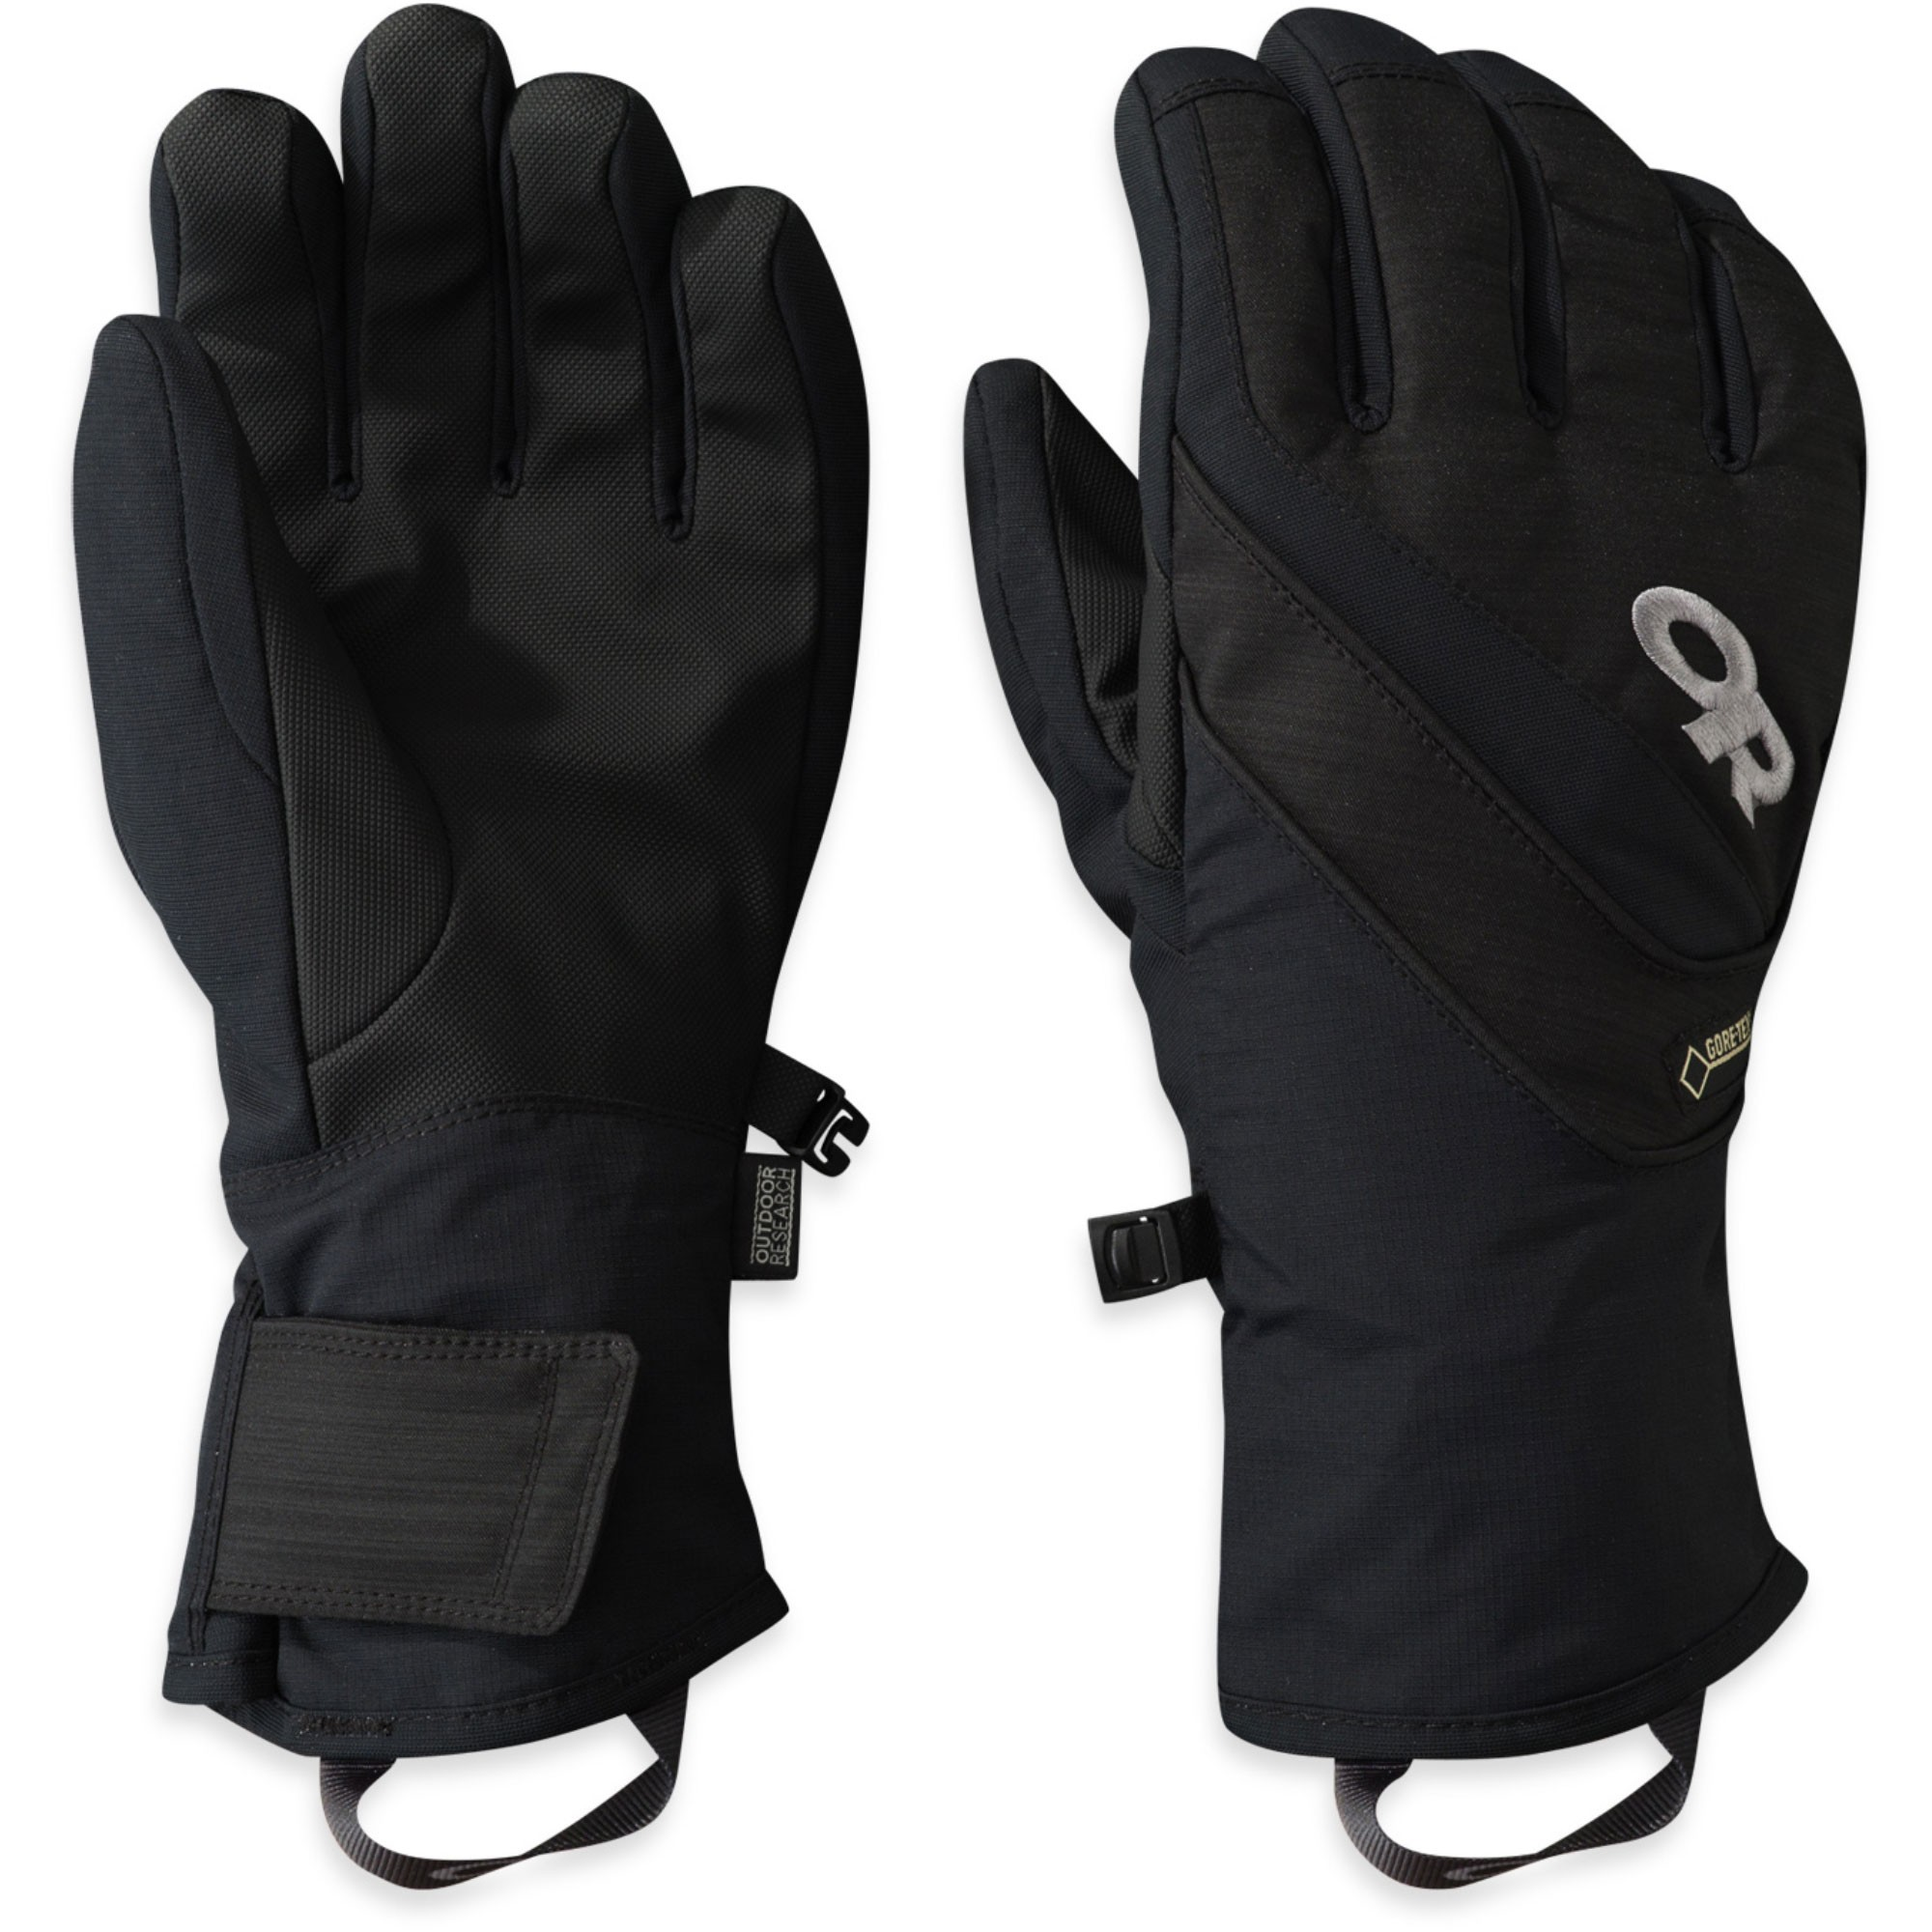 OUTDOOR RESEARCH - Women's Centurion Gore-Tex Gloves